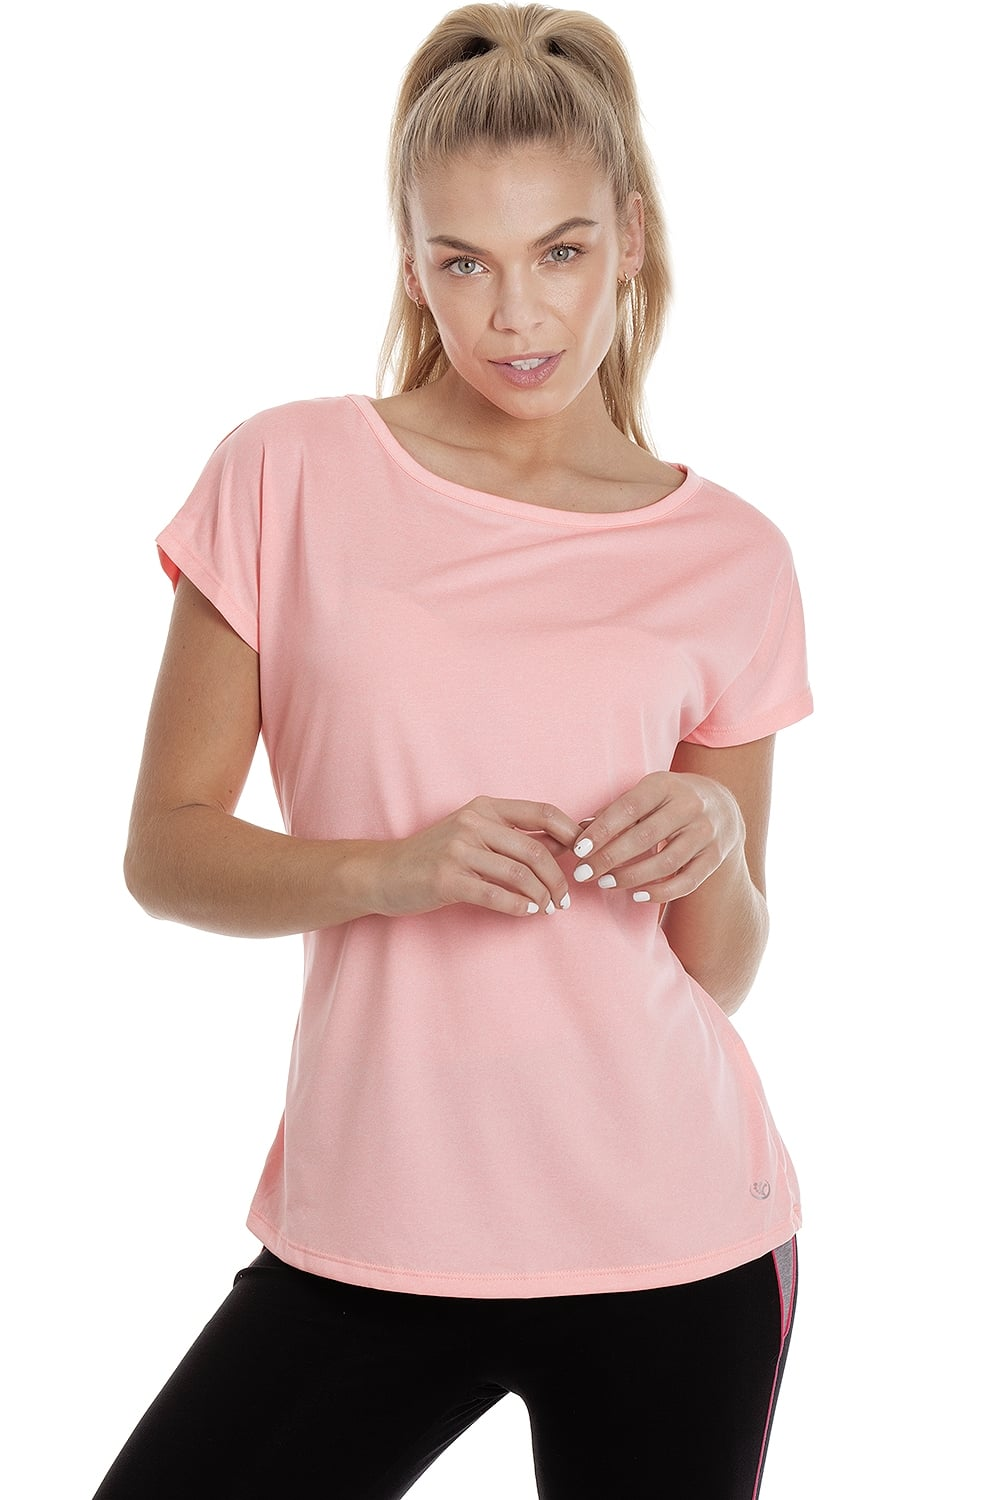 Ex dunnes womens coral pink short sleeve sports t shirt for Coral t shirt womens